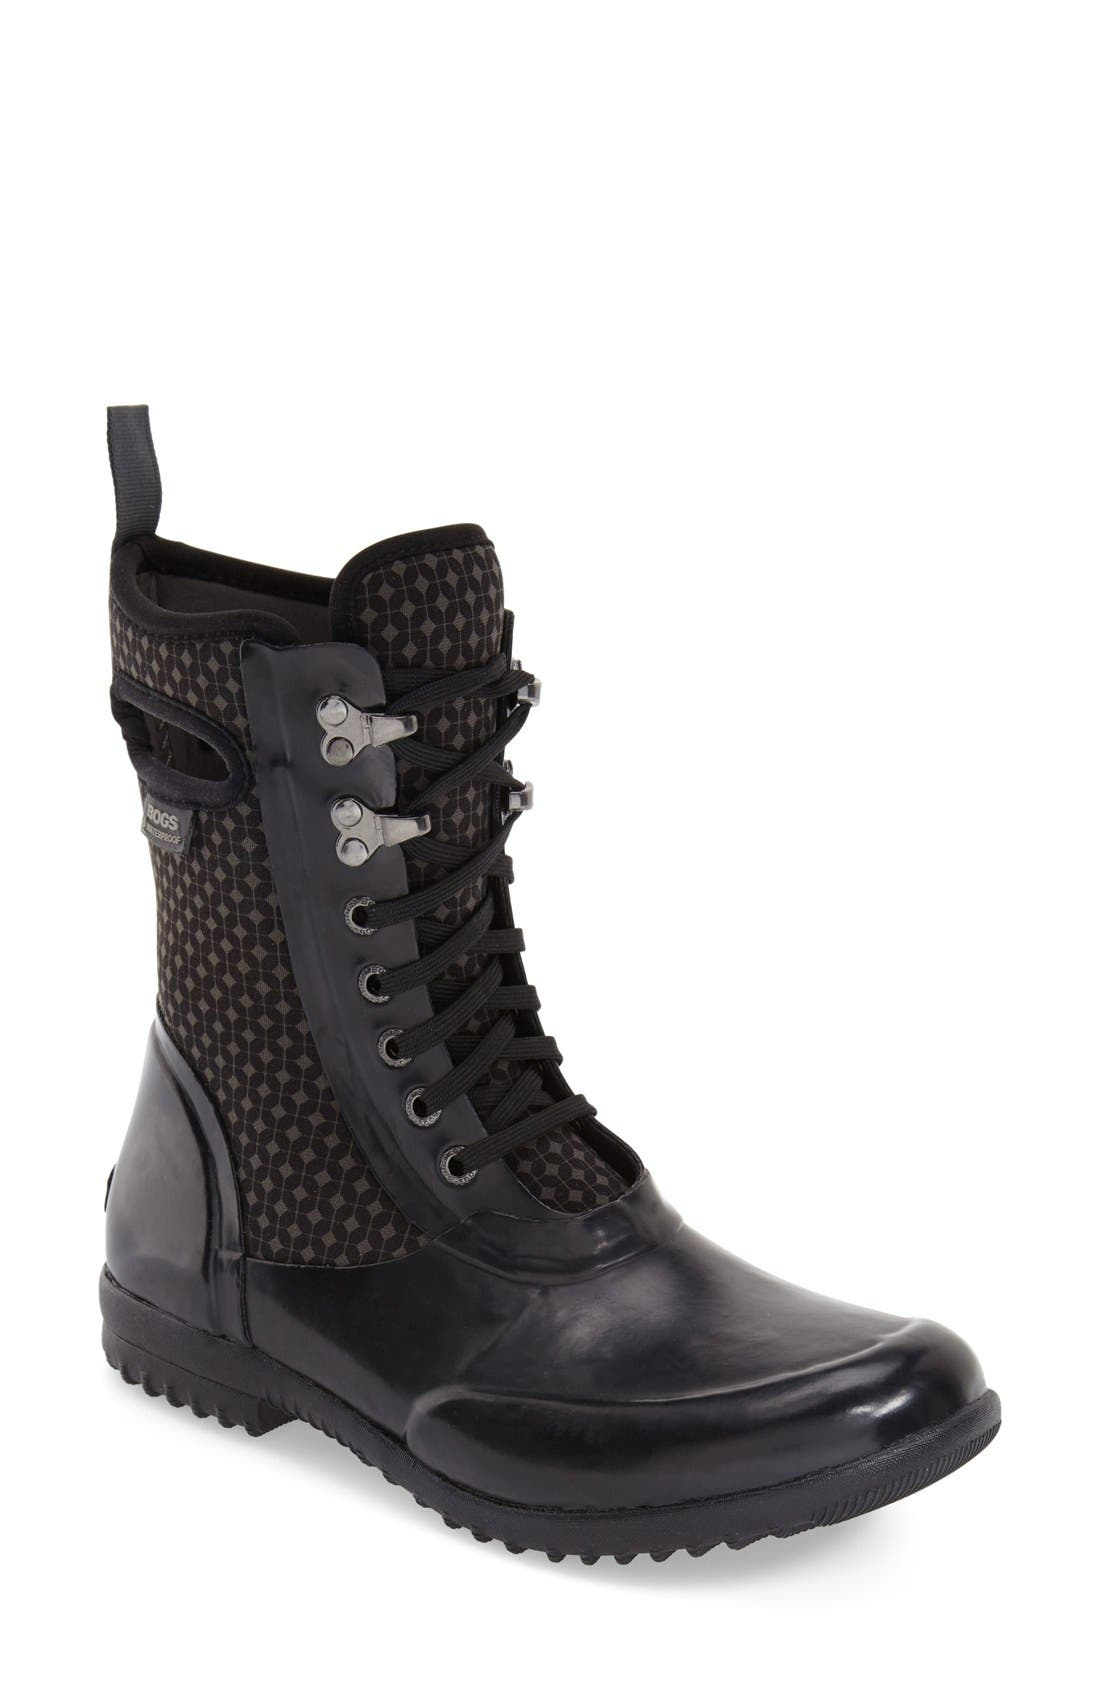 Bogs 'Sidney Cravat' Lace-Up Waterproof Boot (Women)